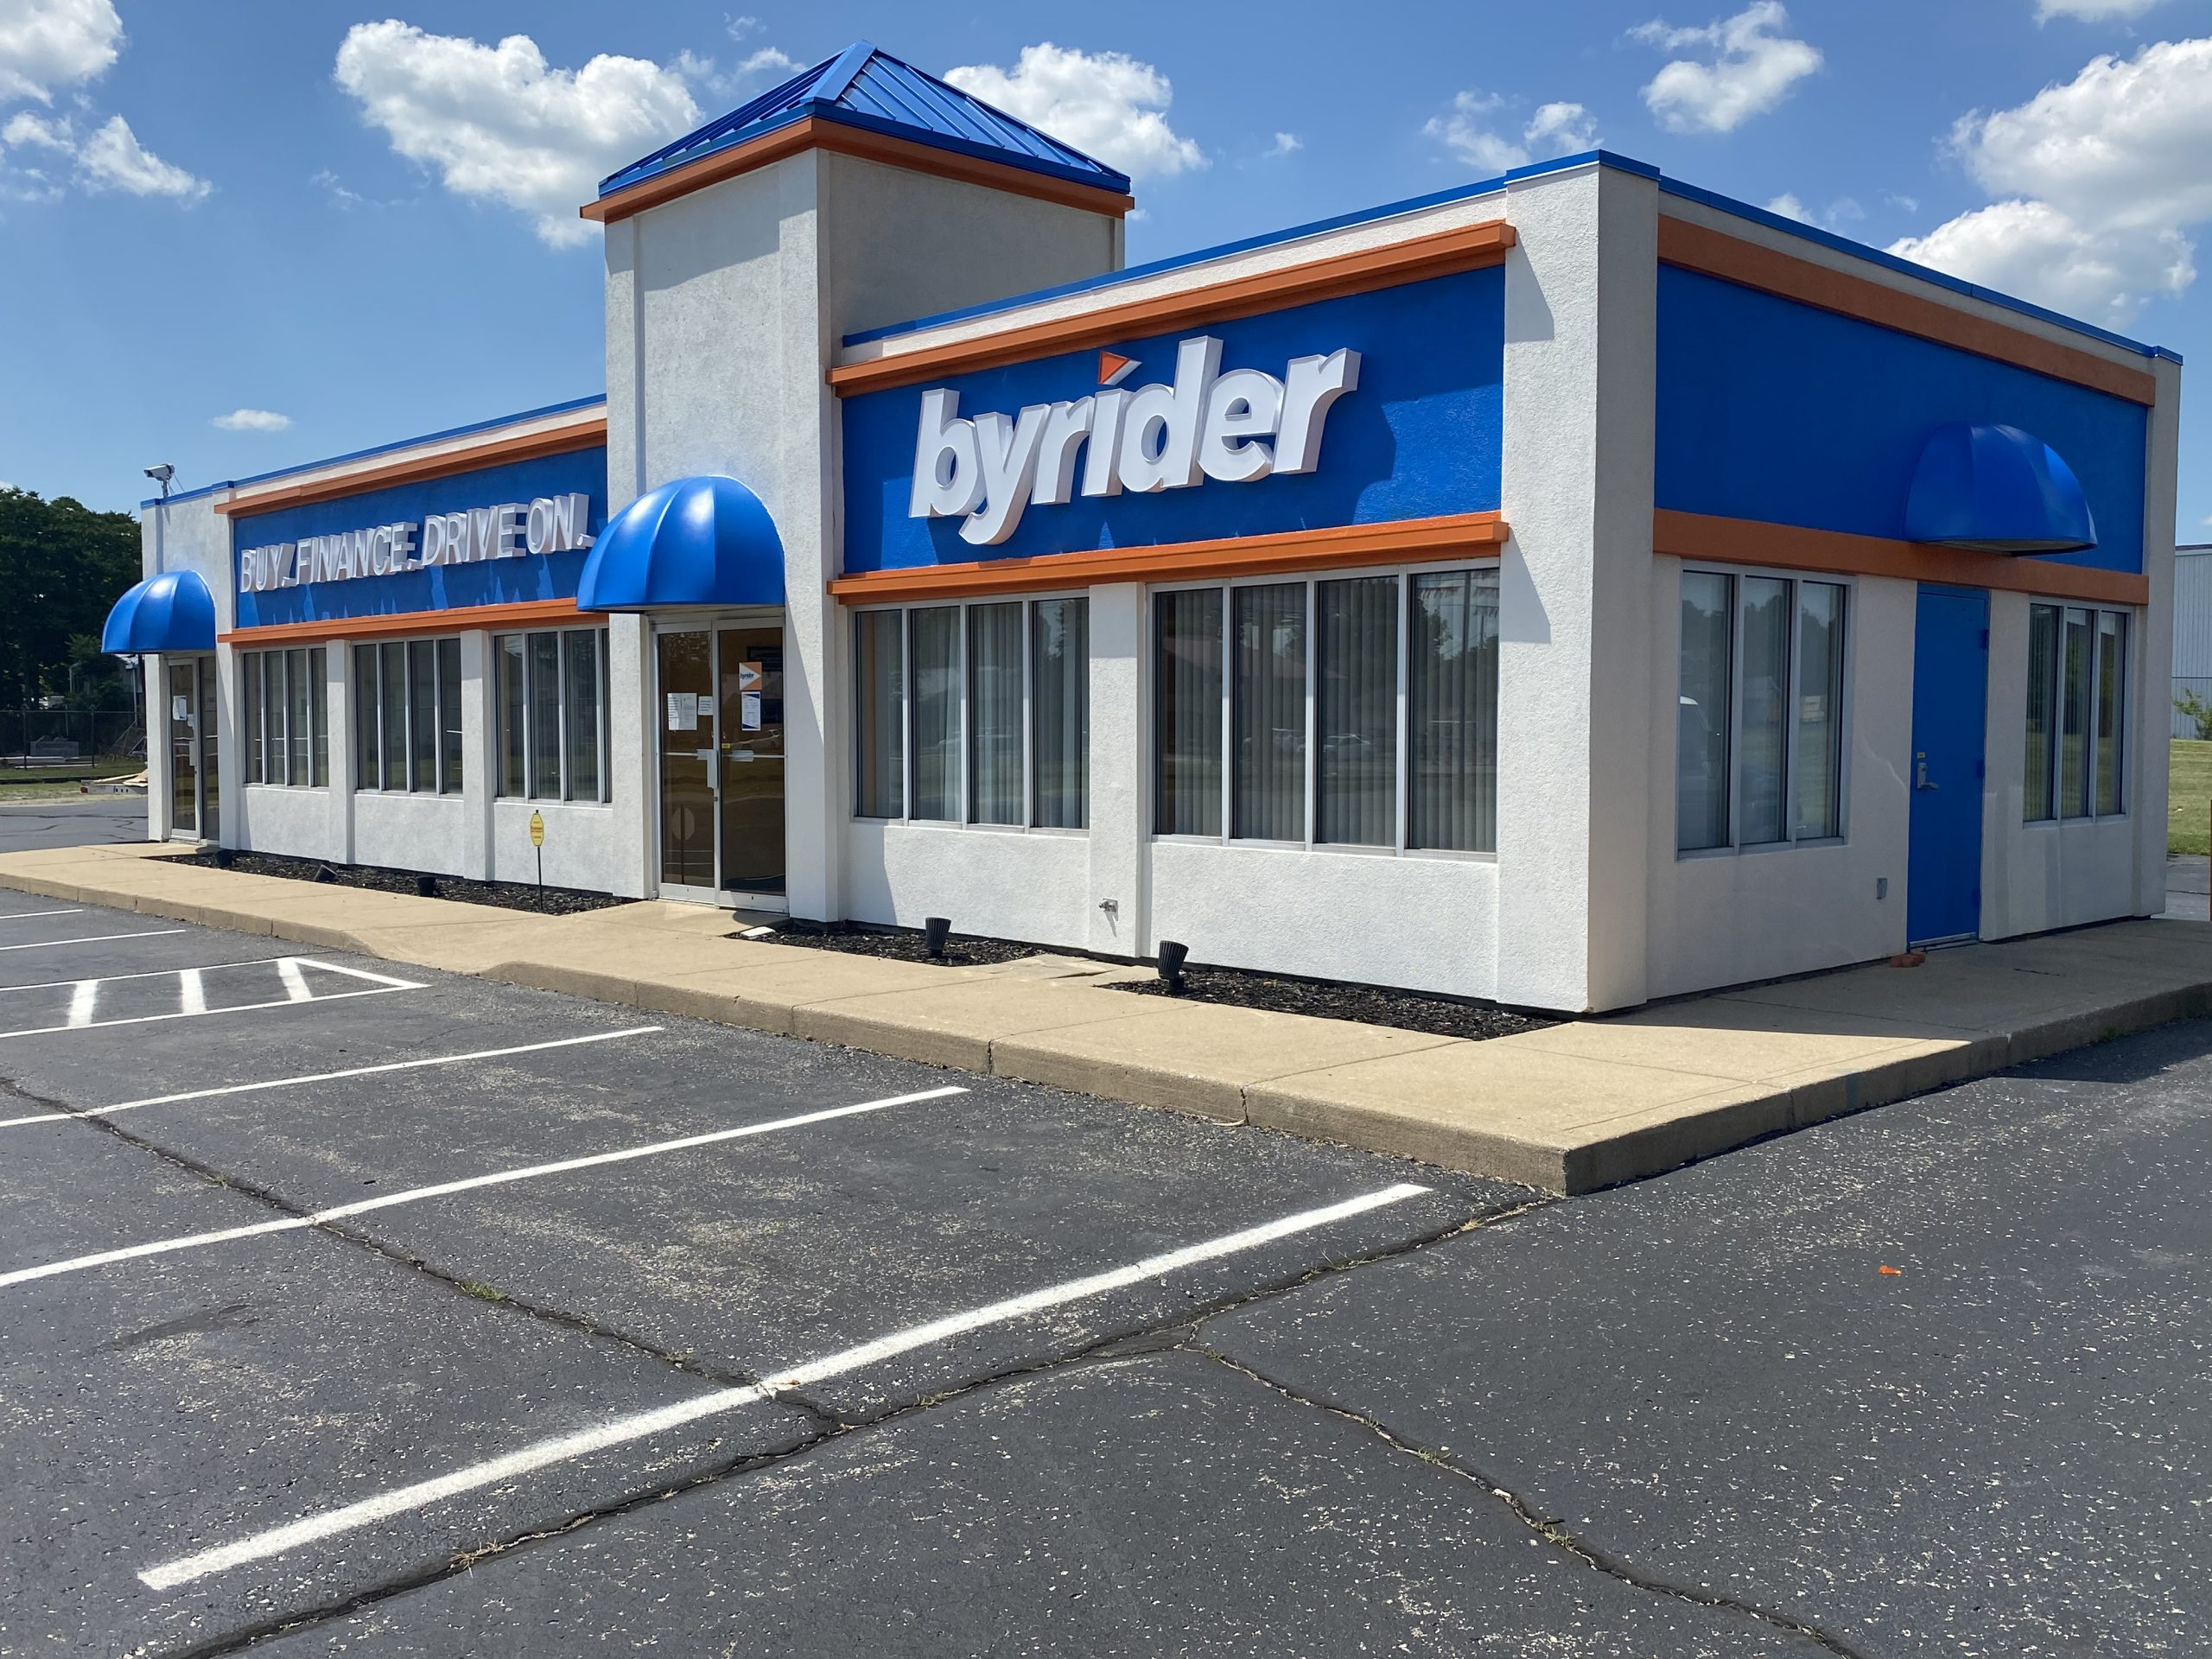 A freshly painted Byrider building showing the logo and orange and blue accents.